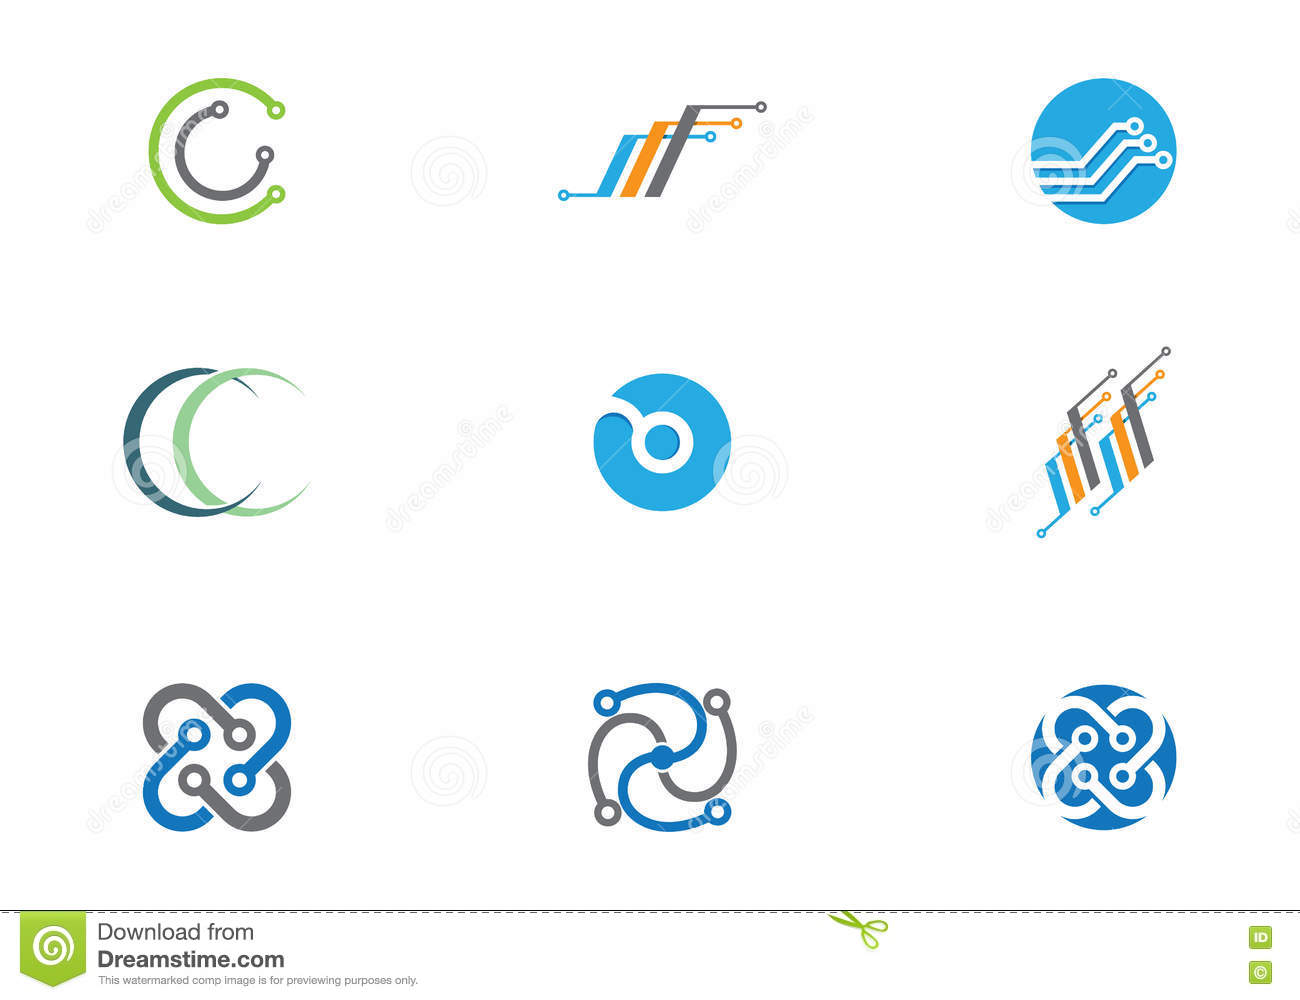 Cable, wires, wiring logo